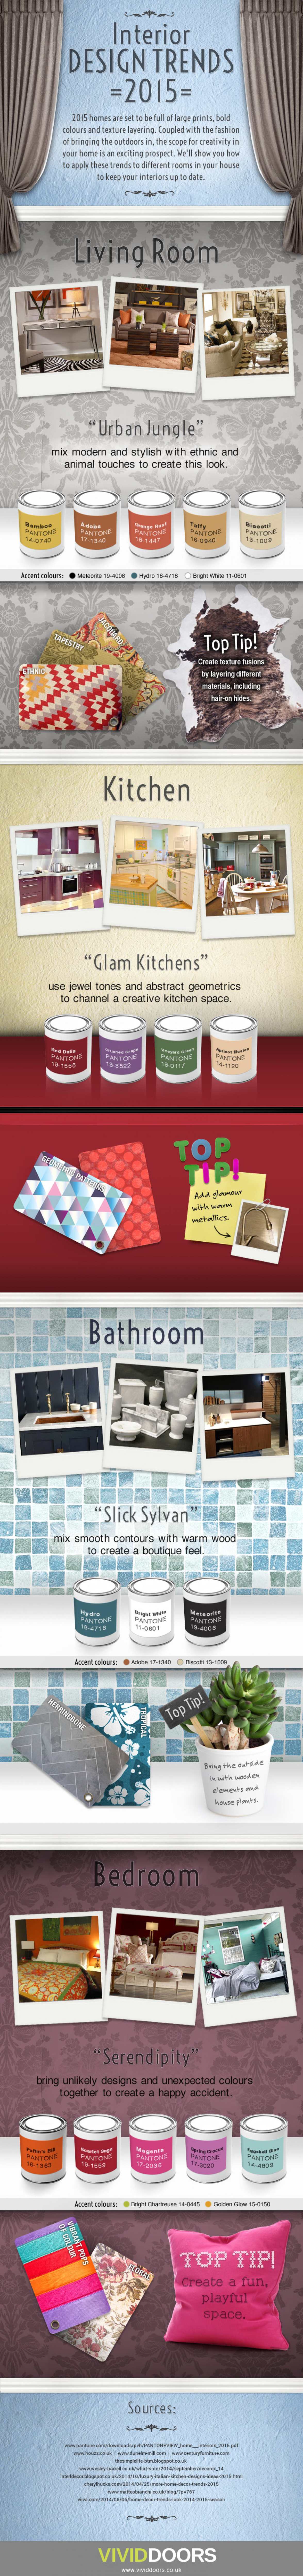 interior design trends for 2015 visual ly interior design trends for 2015 infographic